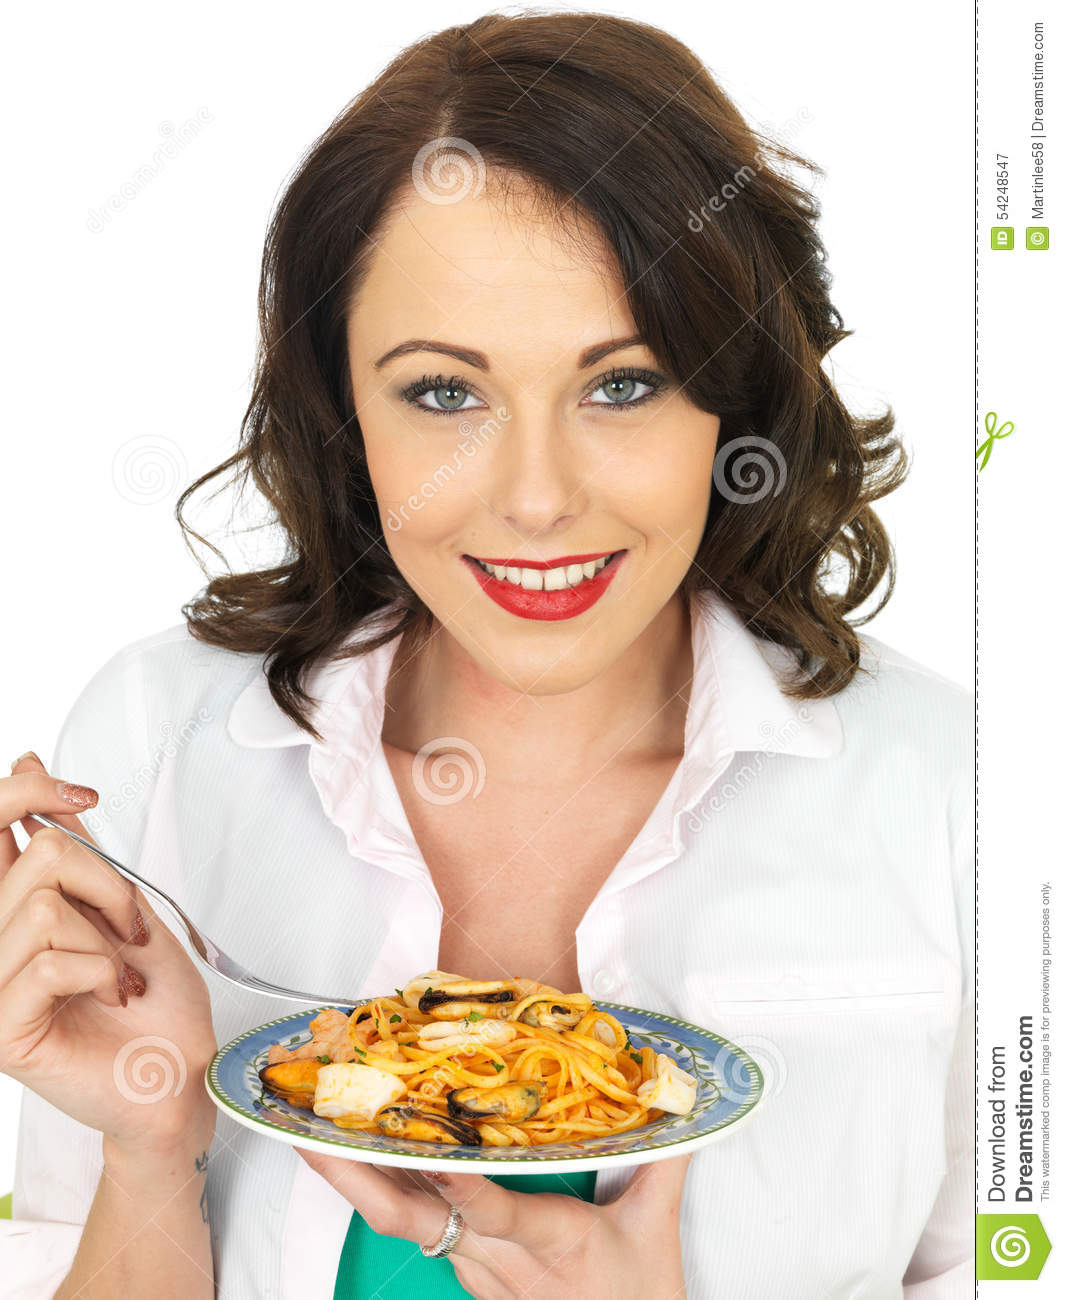 Attractive Young Woman Holding a Plate of Seafood